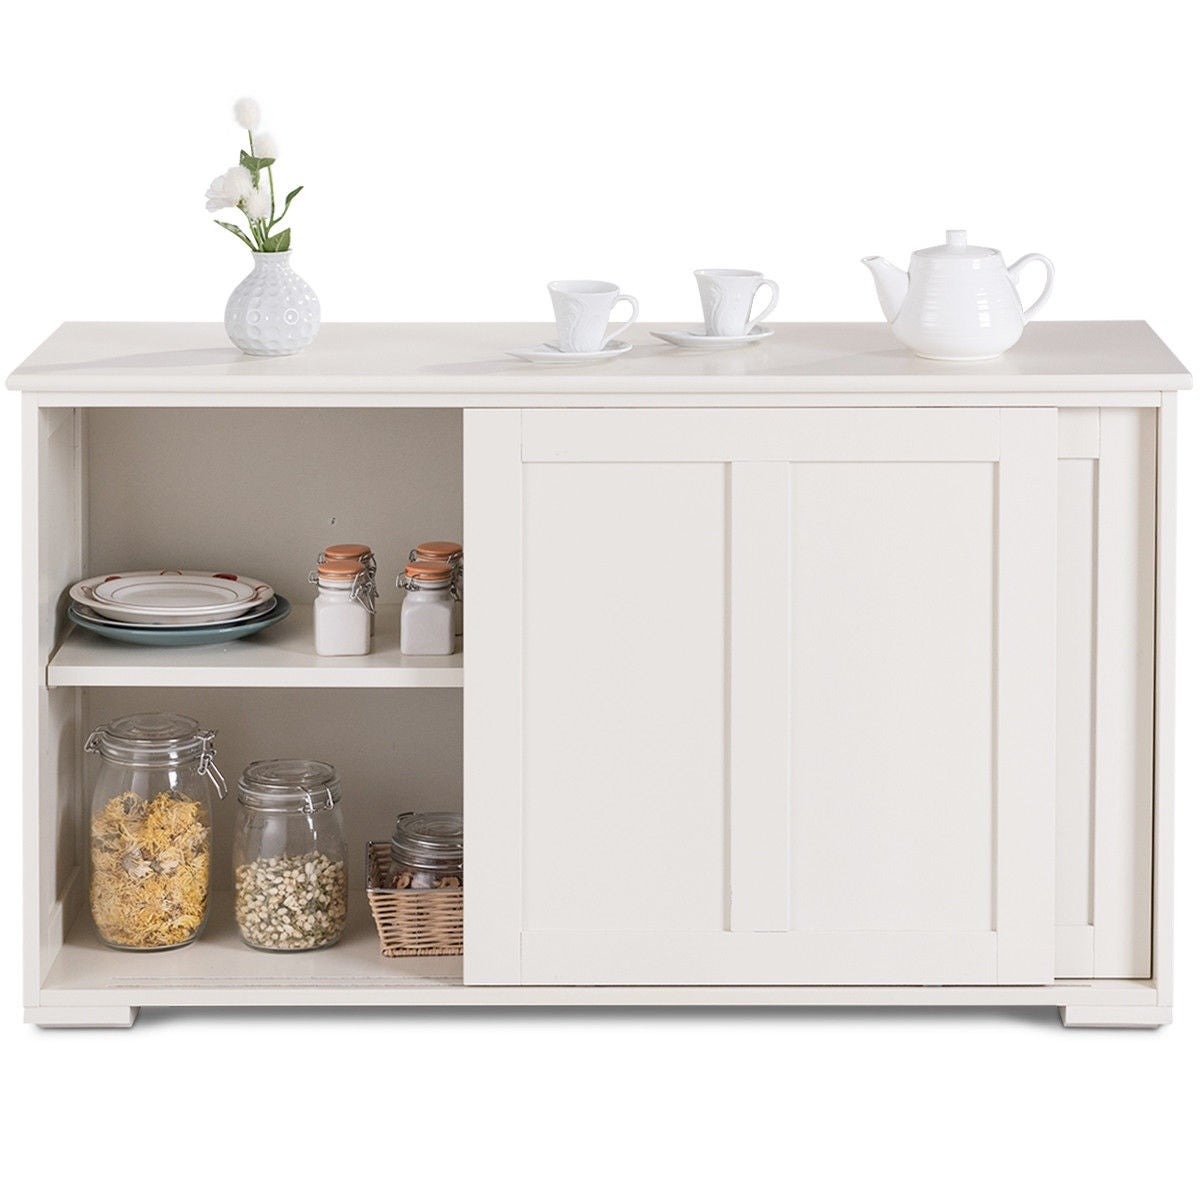 Costway Kitchen Storage Cabinet Sideboard Buffet Cupboard Wood Sliding Door Pantry Pertaining To Contemporary Style Wooden Buffets With Two Side Door Storage Cabinets (View 5 of 30)